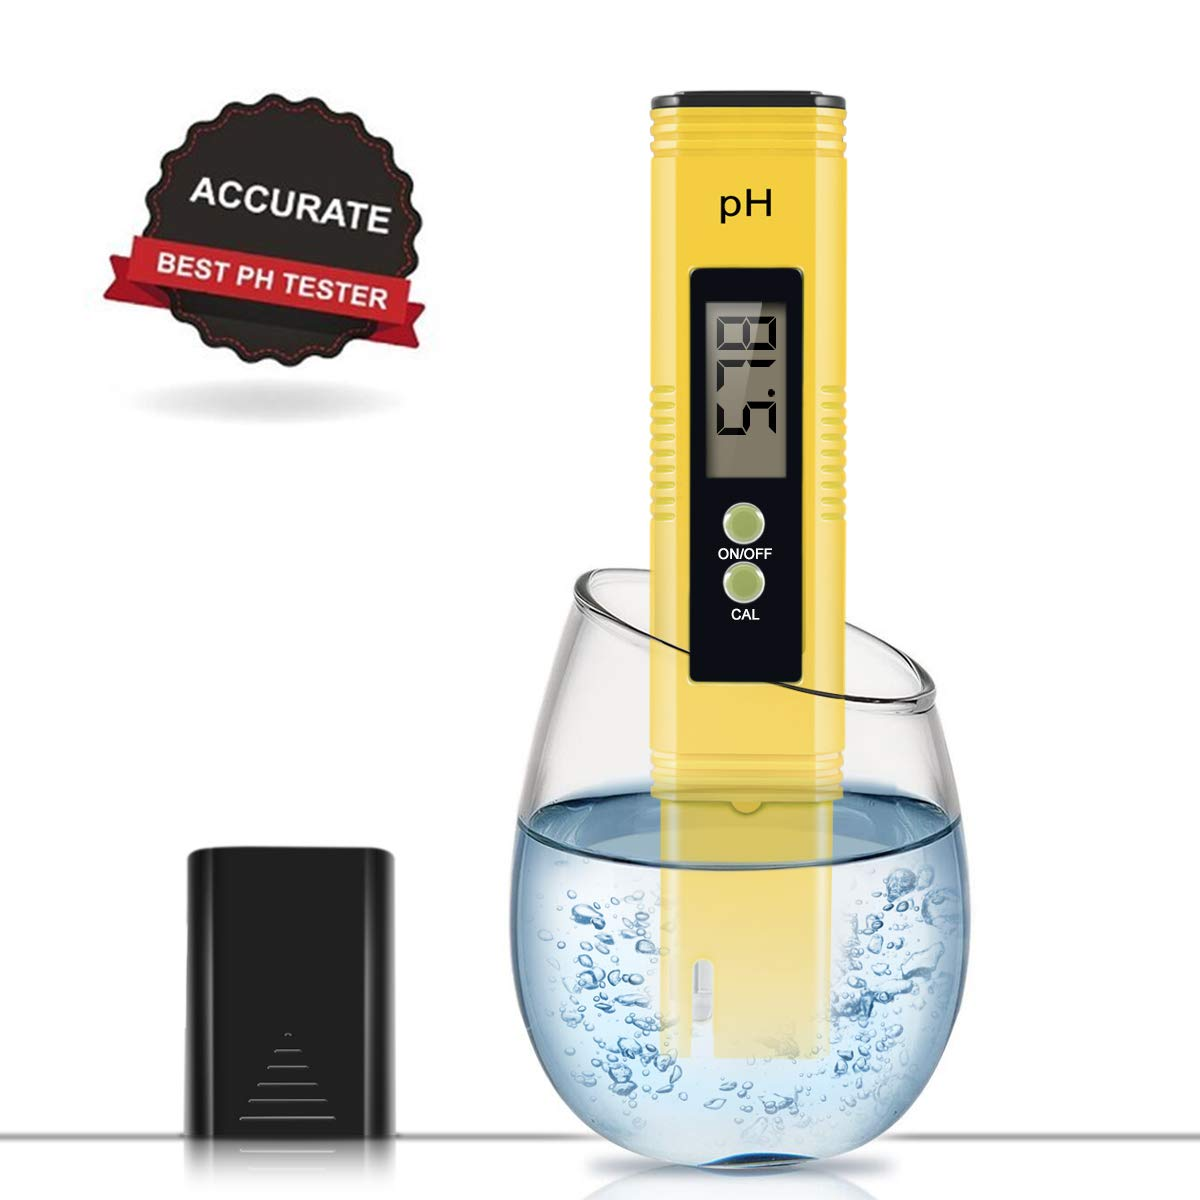 Digital PH Meter, PH Meter 0.01 Resolution Pocket Size Water Quality Tester with ATC 0-14 pH Measurement Range for Household Drinking Water, Aquarium, Swimming Pools, Hydroponics by Car Guardiance